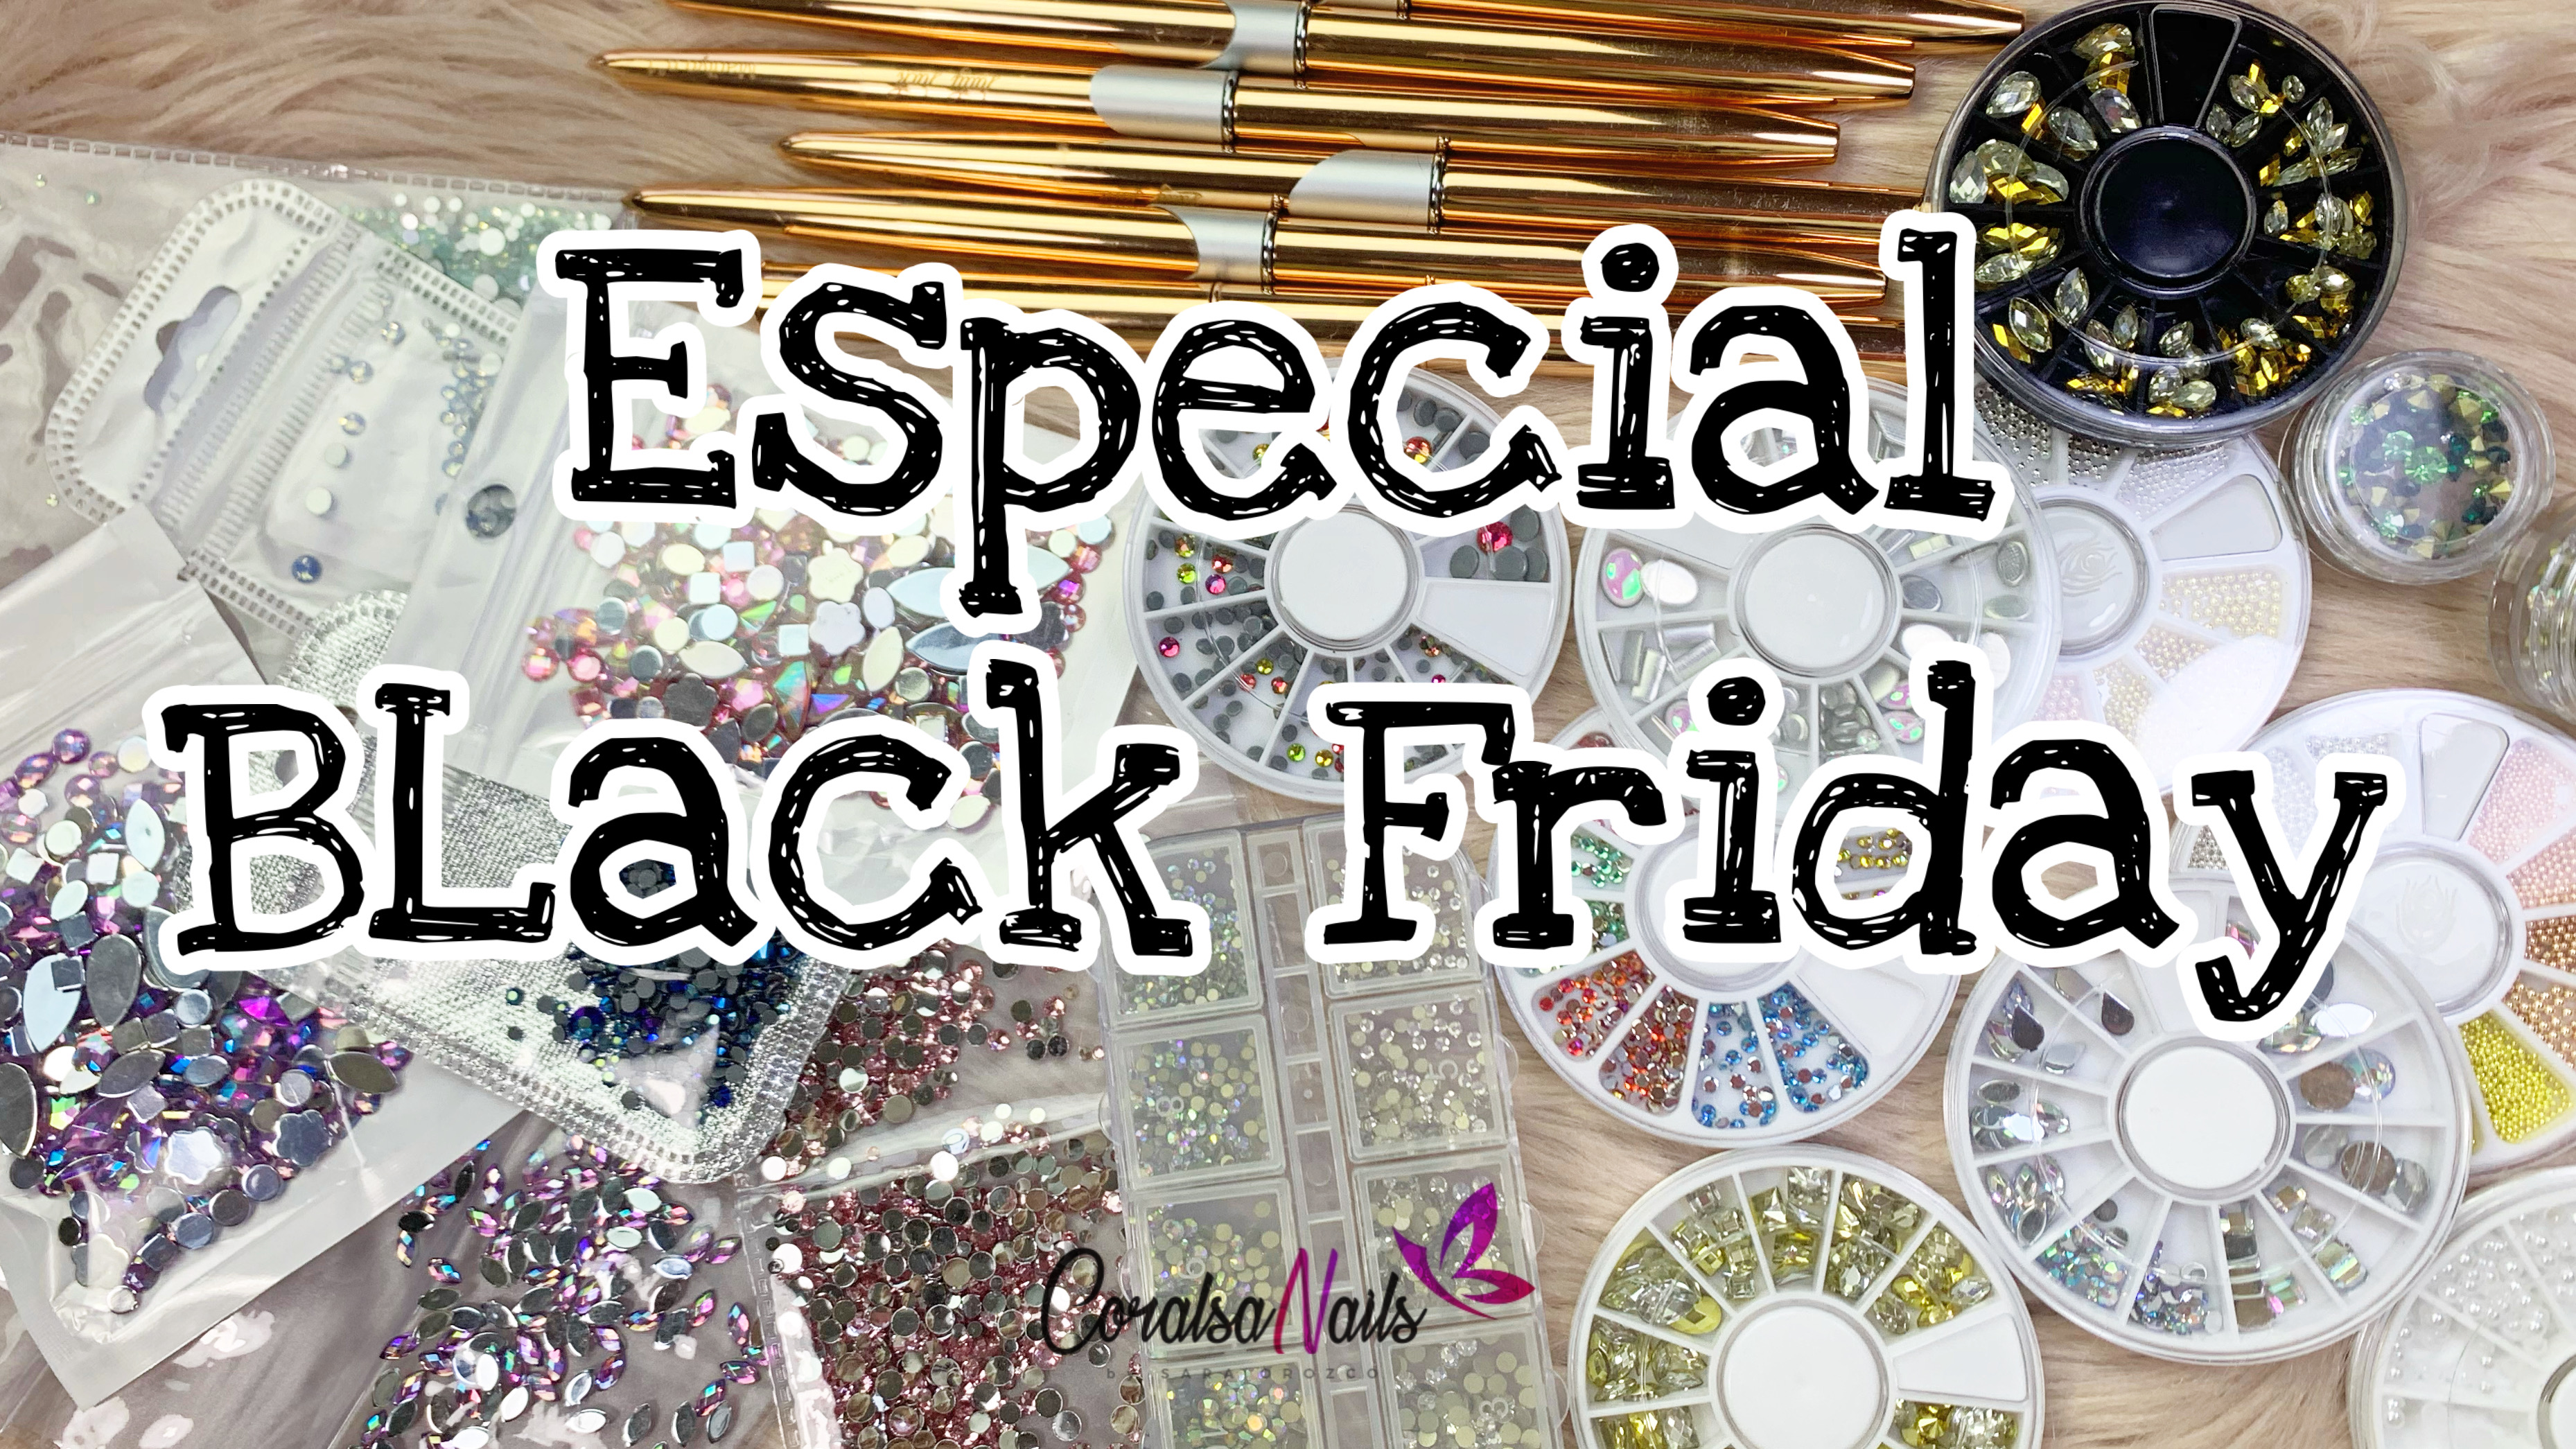 Probando Nuevos Productos ( Especial Black Friday)